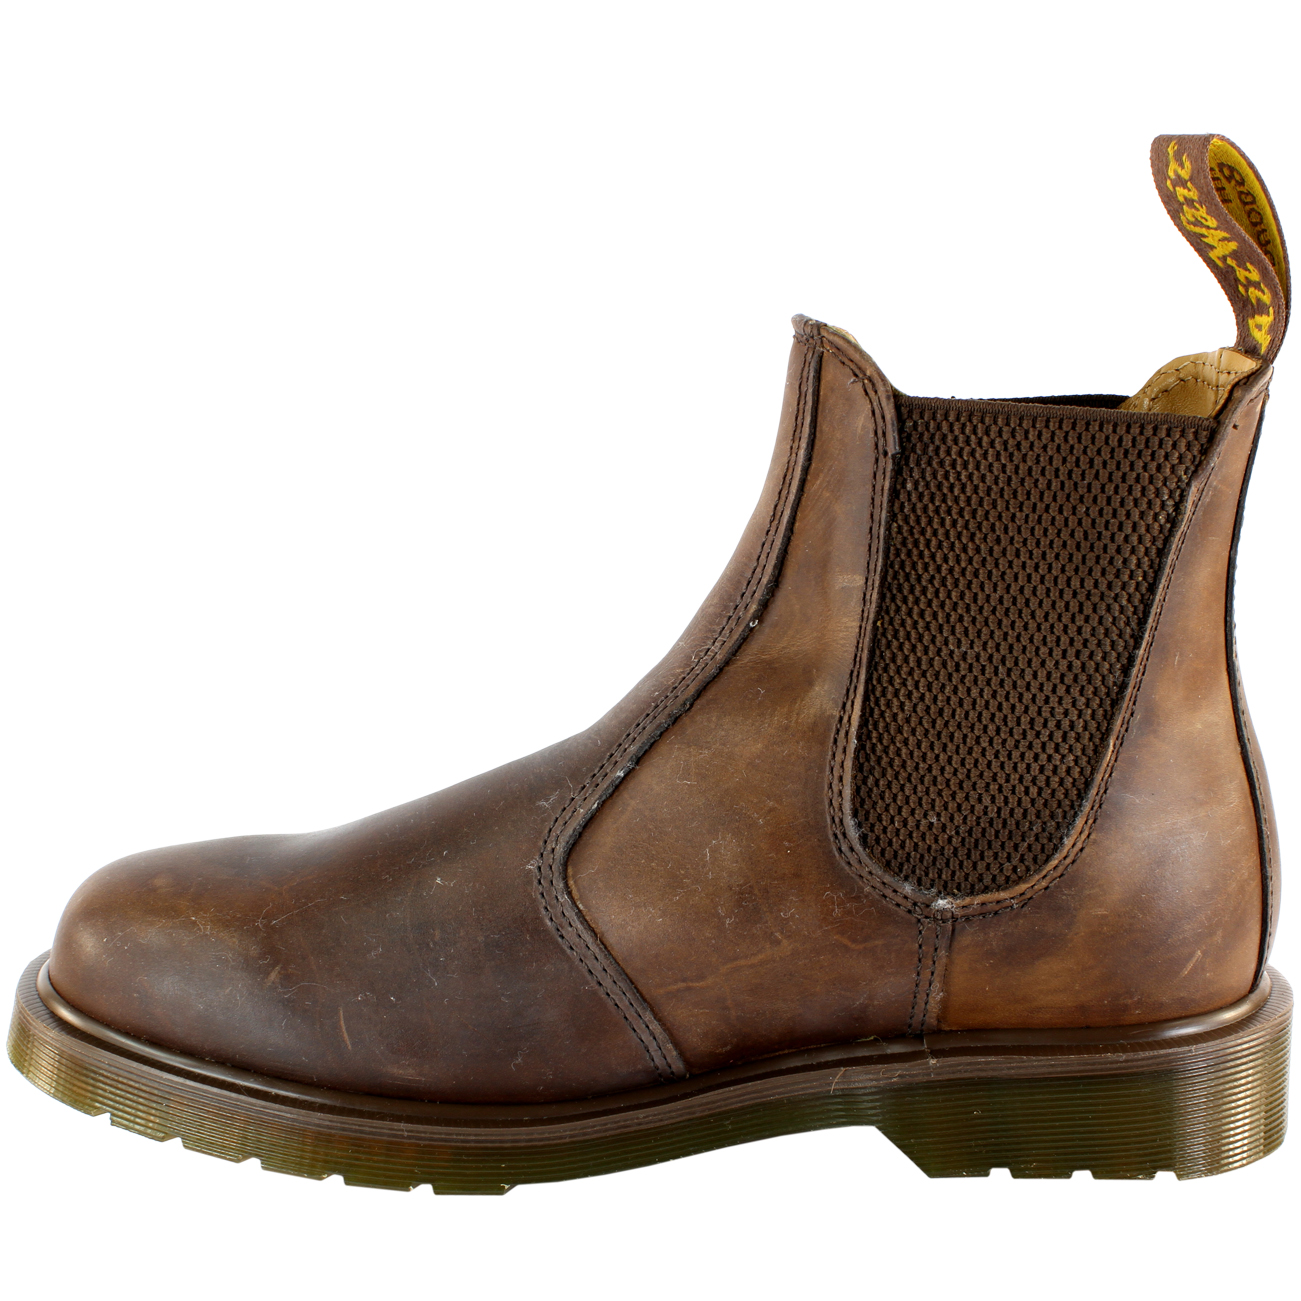 951bc28b450 Mens Dr Martens 2976 Classic Leather Chelsea Style Ankle High Boots ...